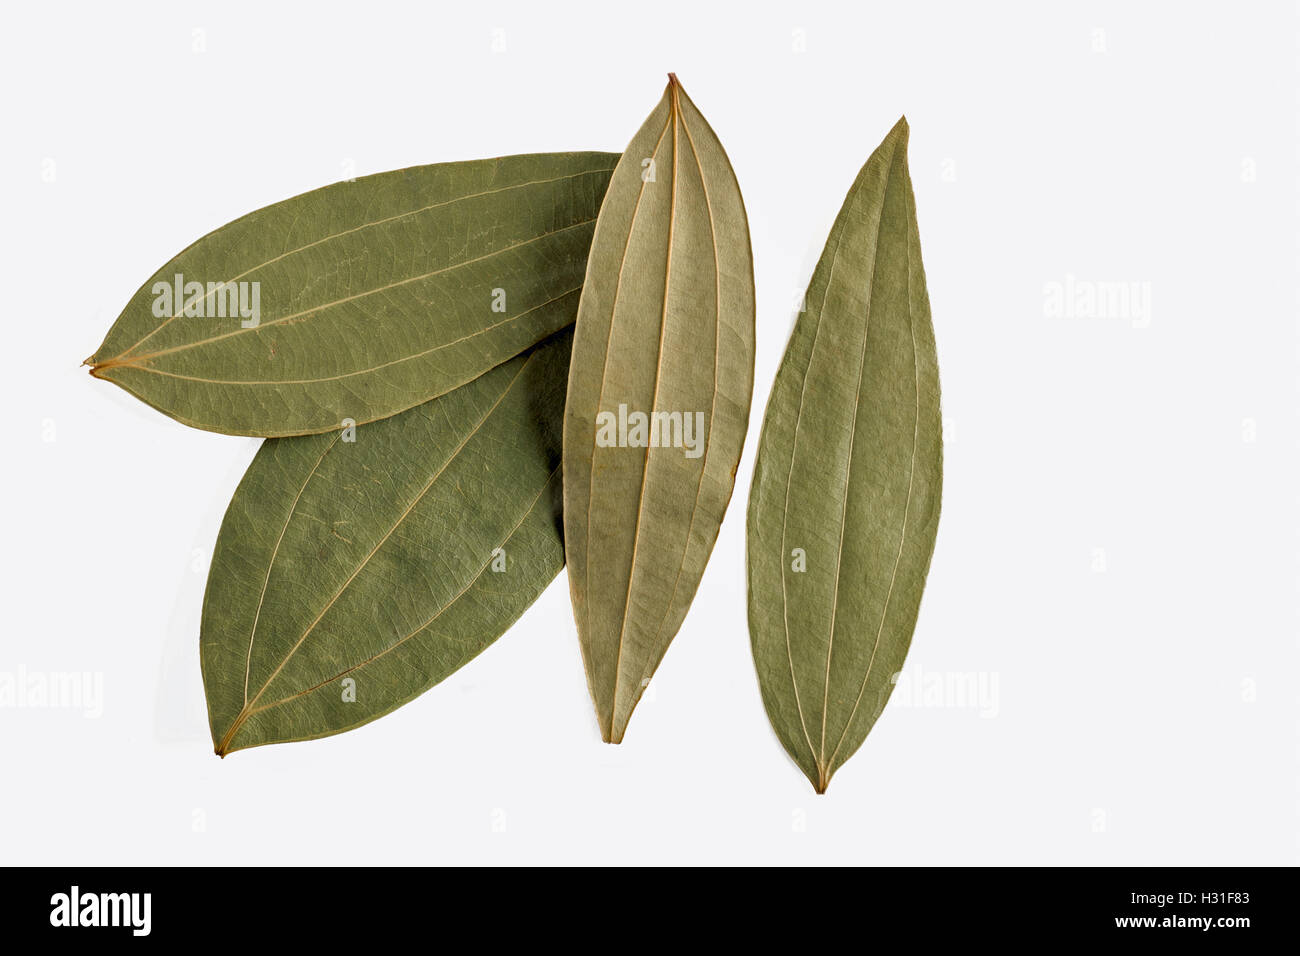 dried Indian bay leaf or tejpatta on a white background - Stock Image